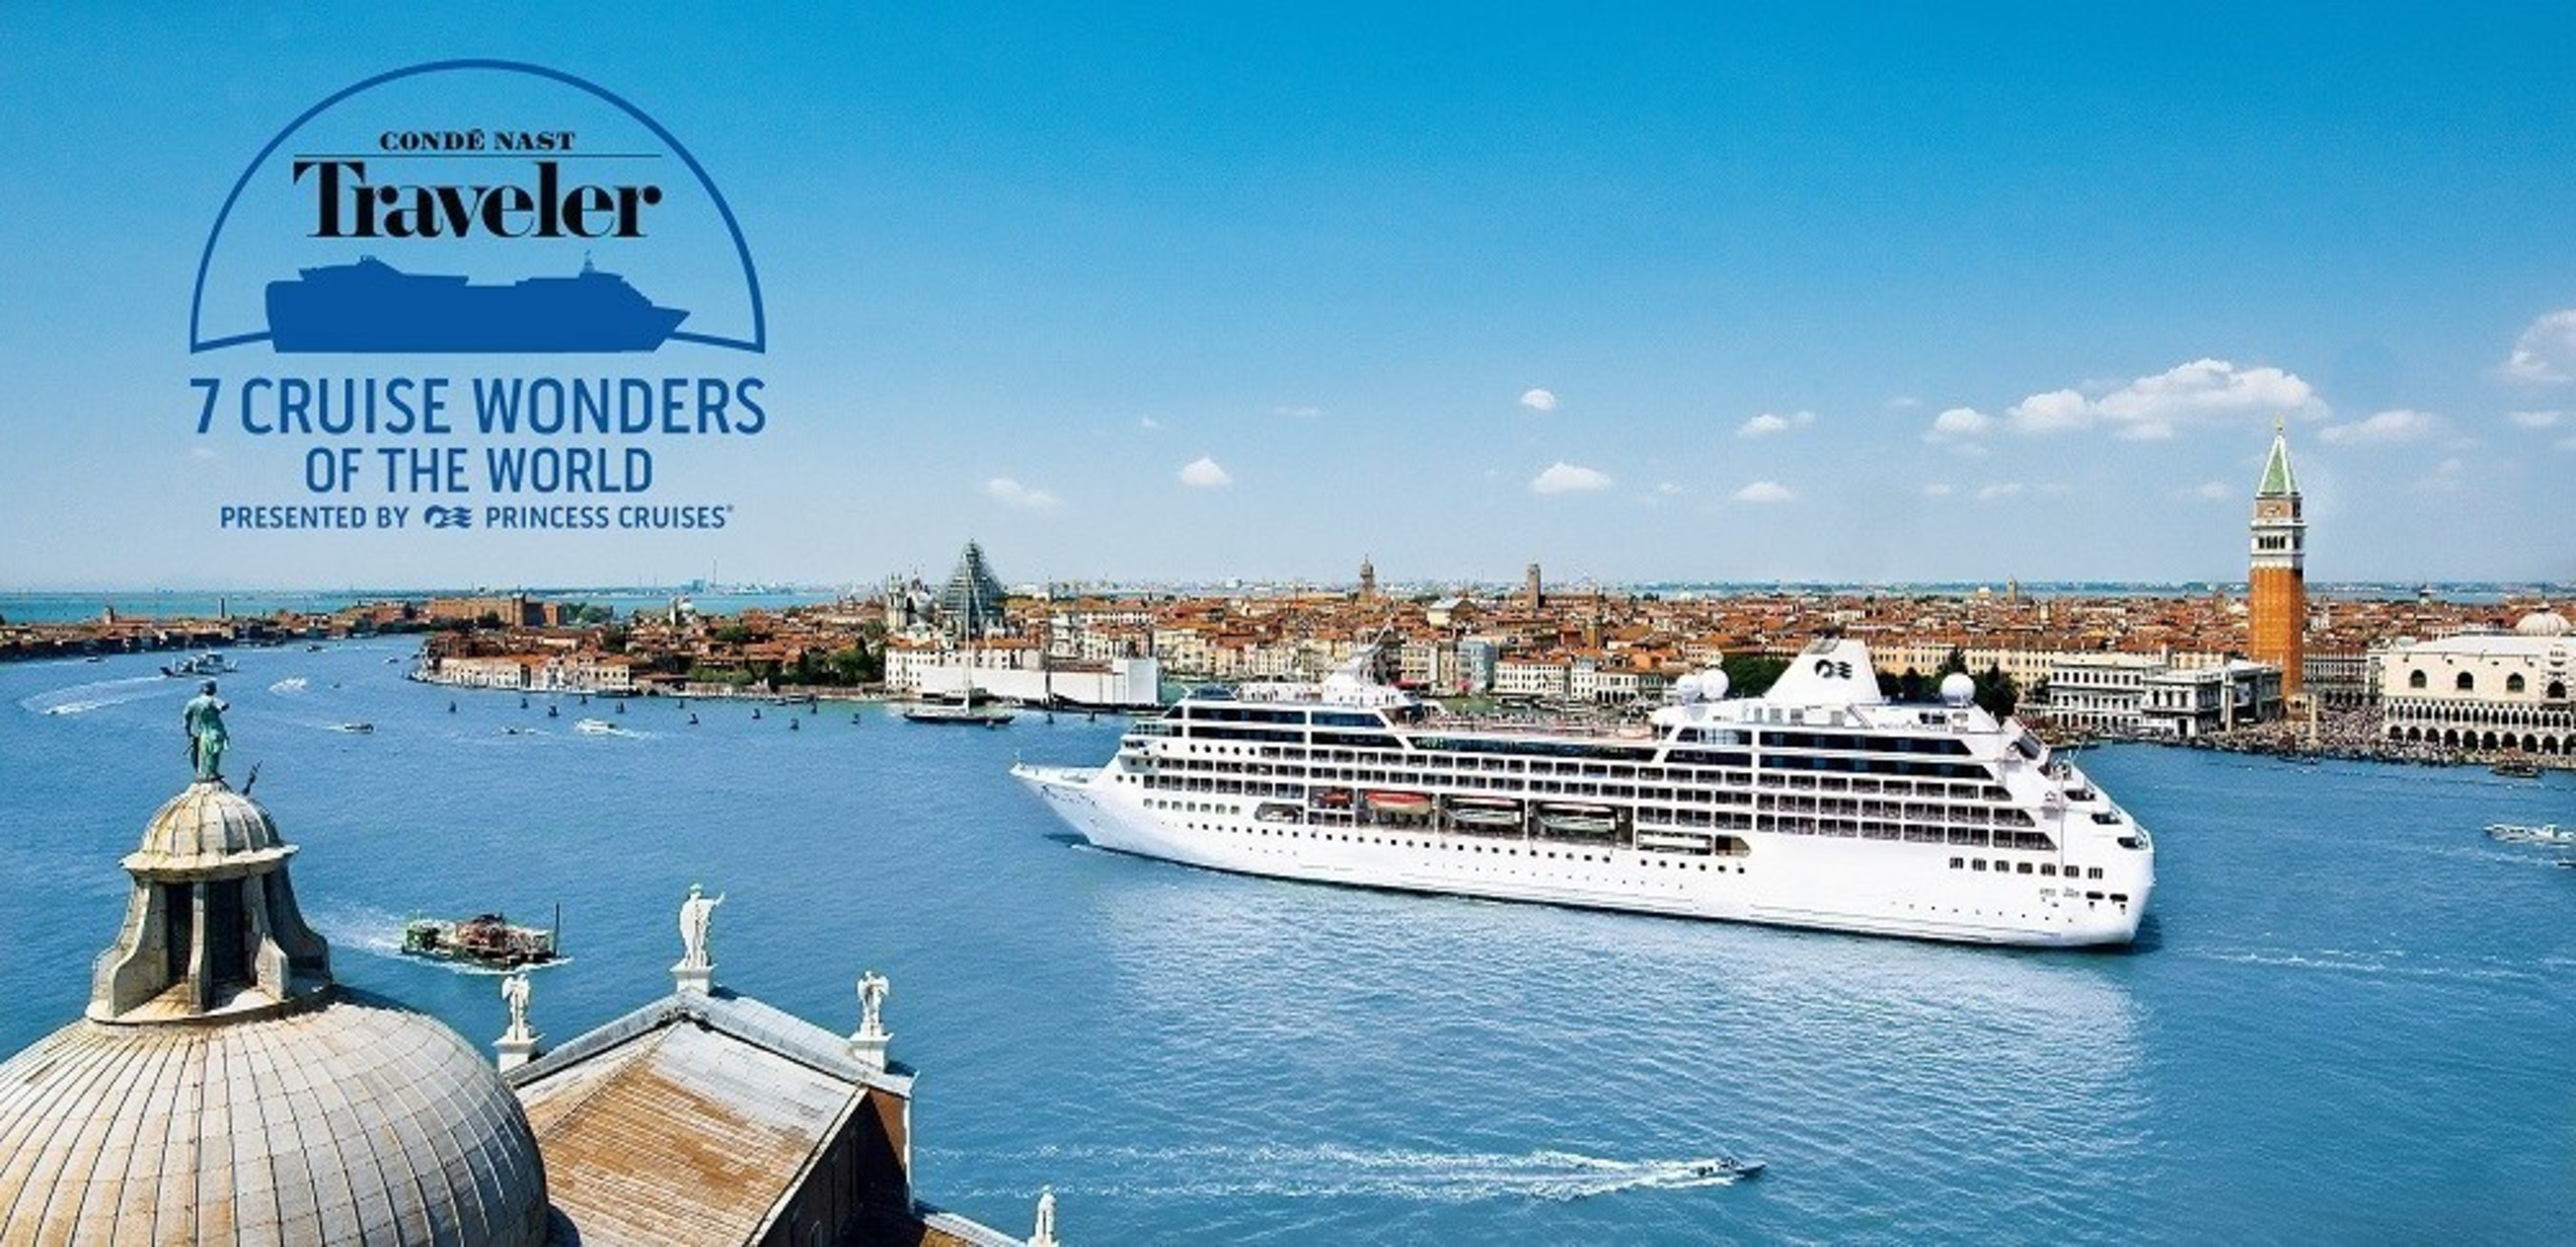 The Grand Canal of Venice has been named the 8th Cruise Wonder of the World.